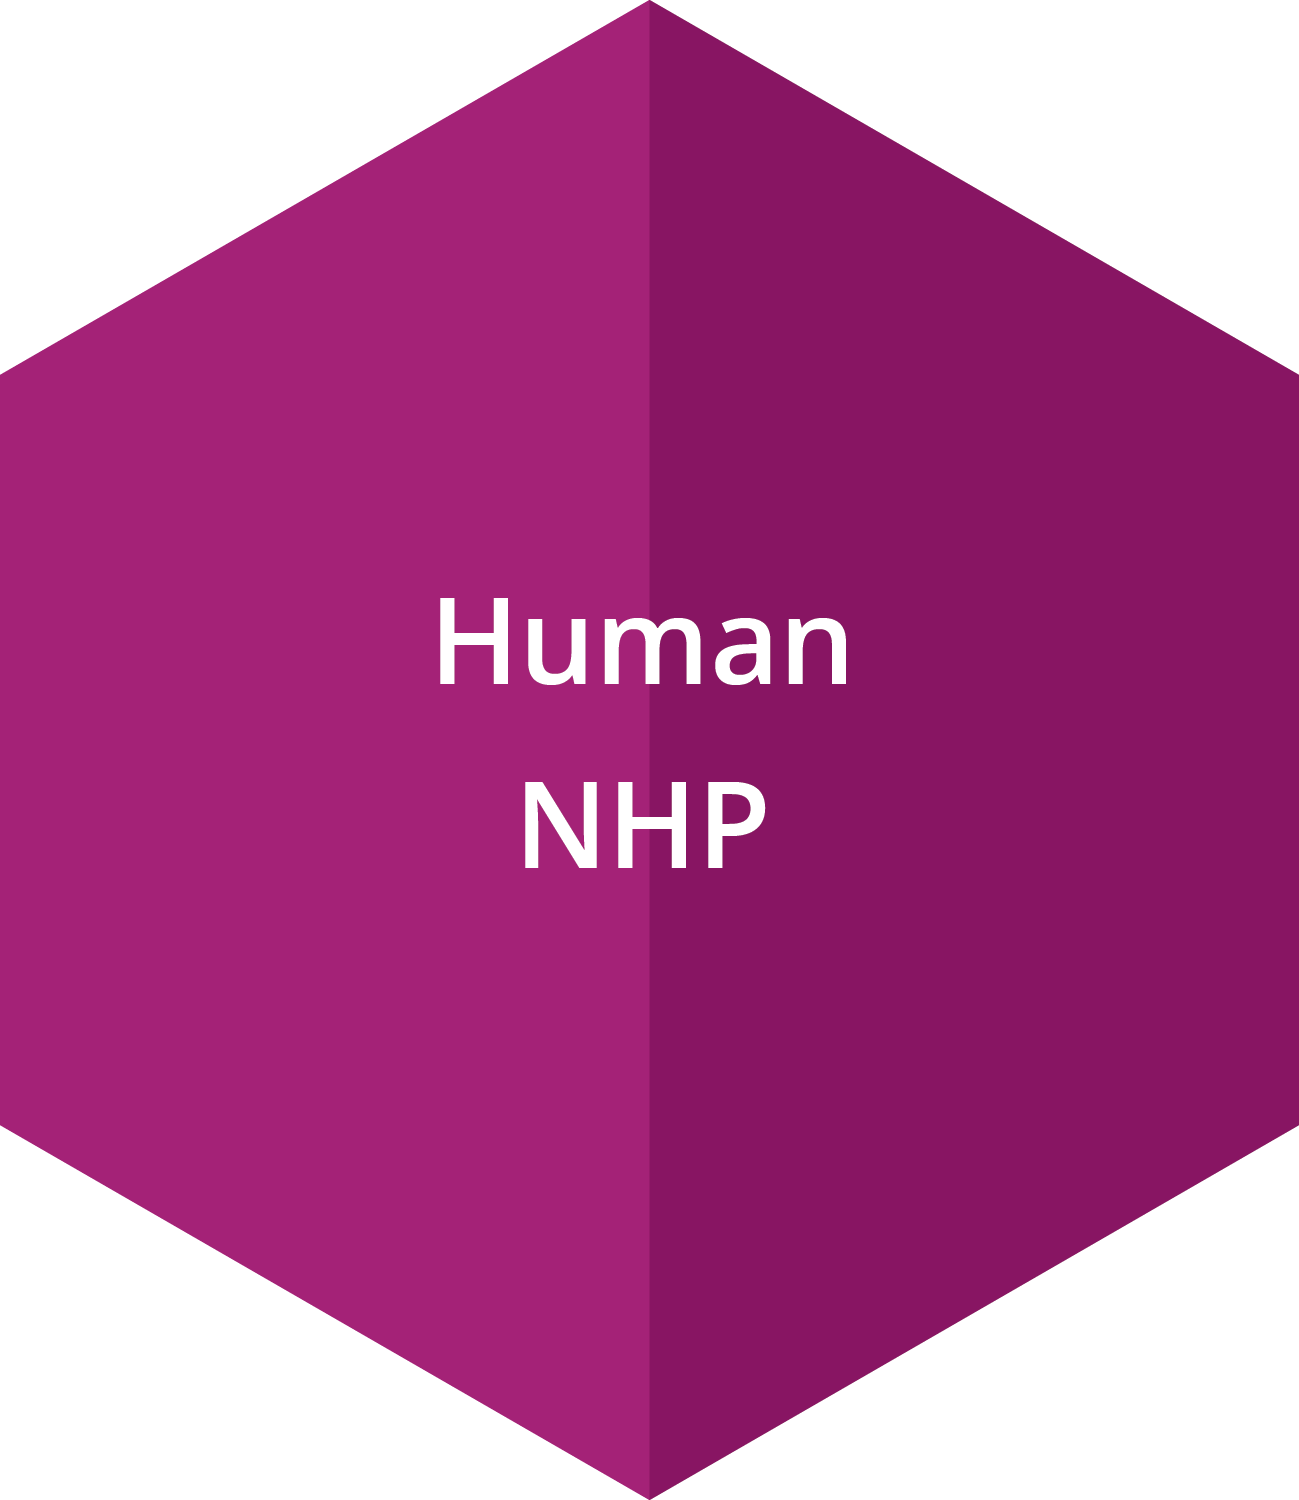 Human, and non-human primate samples